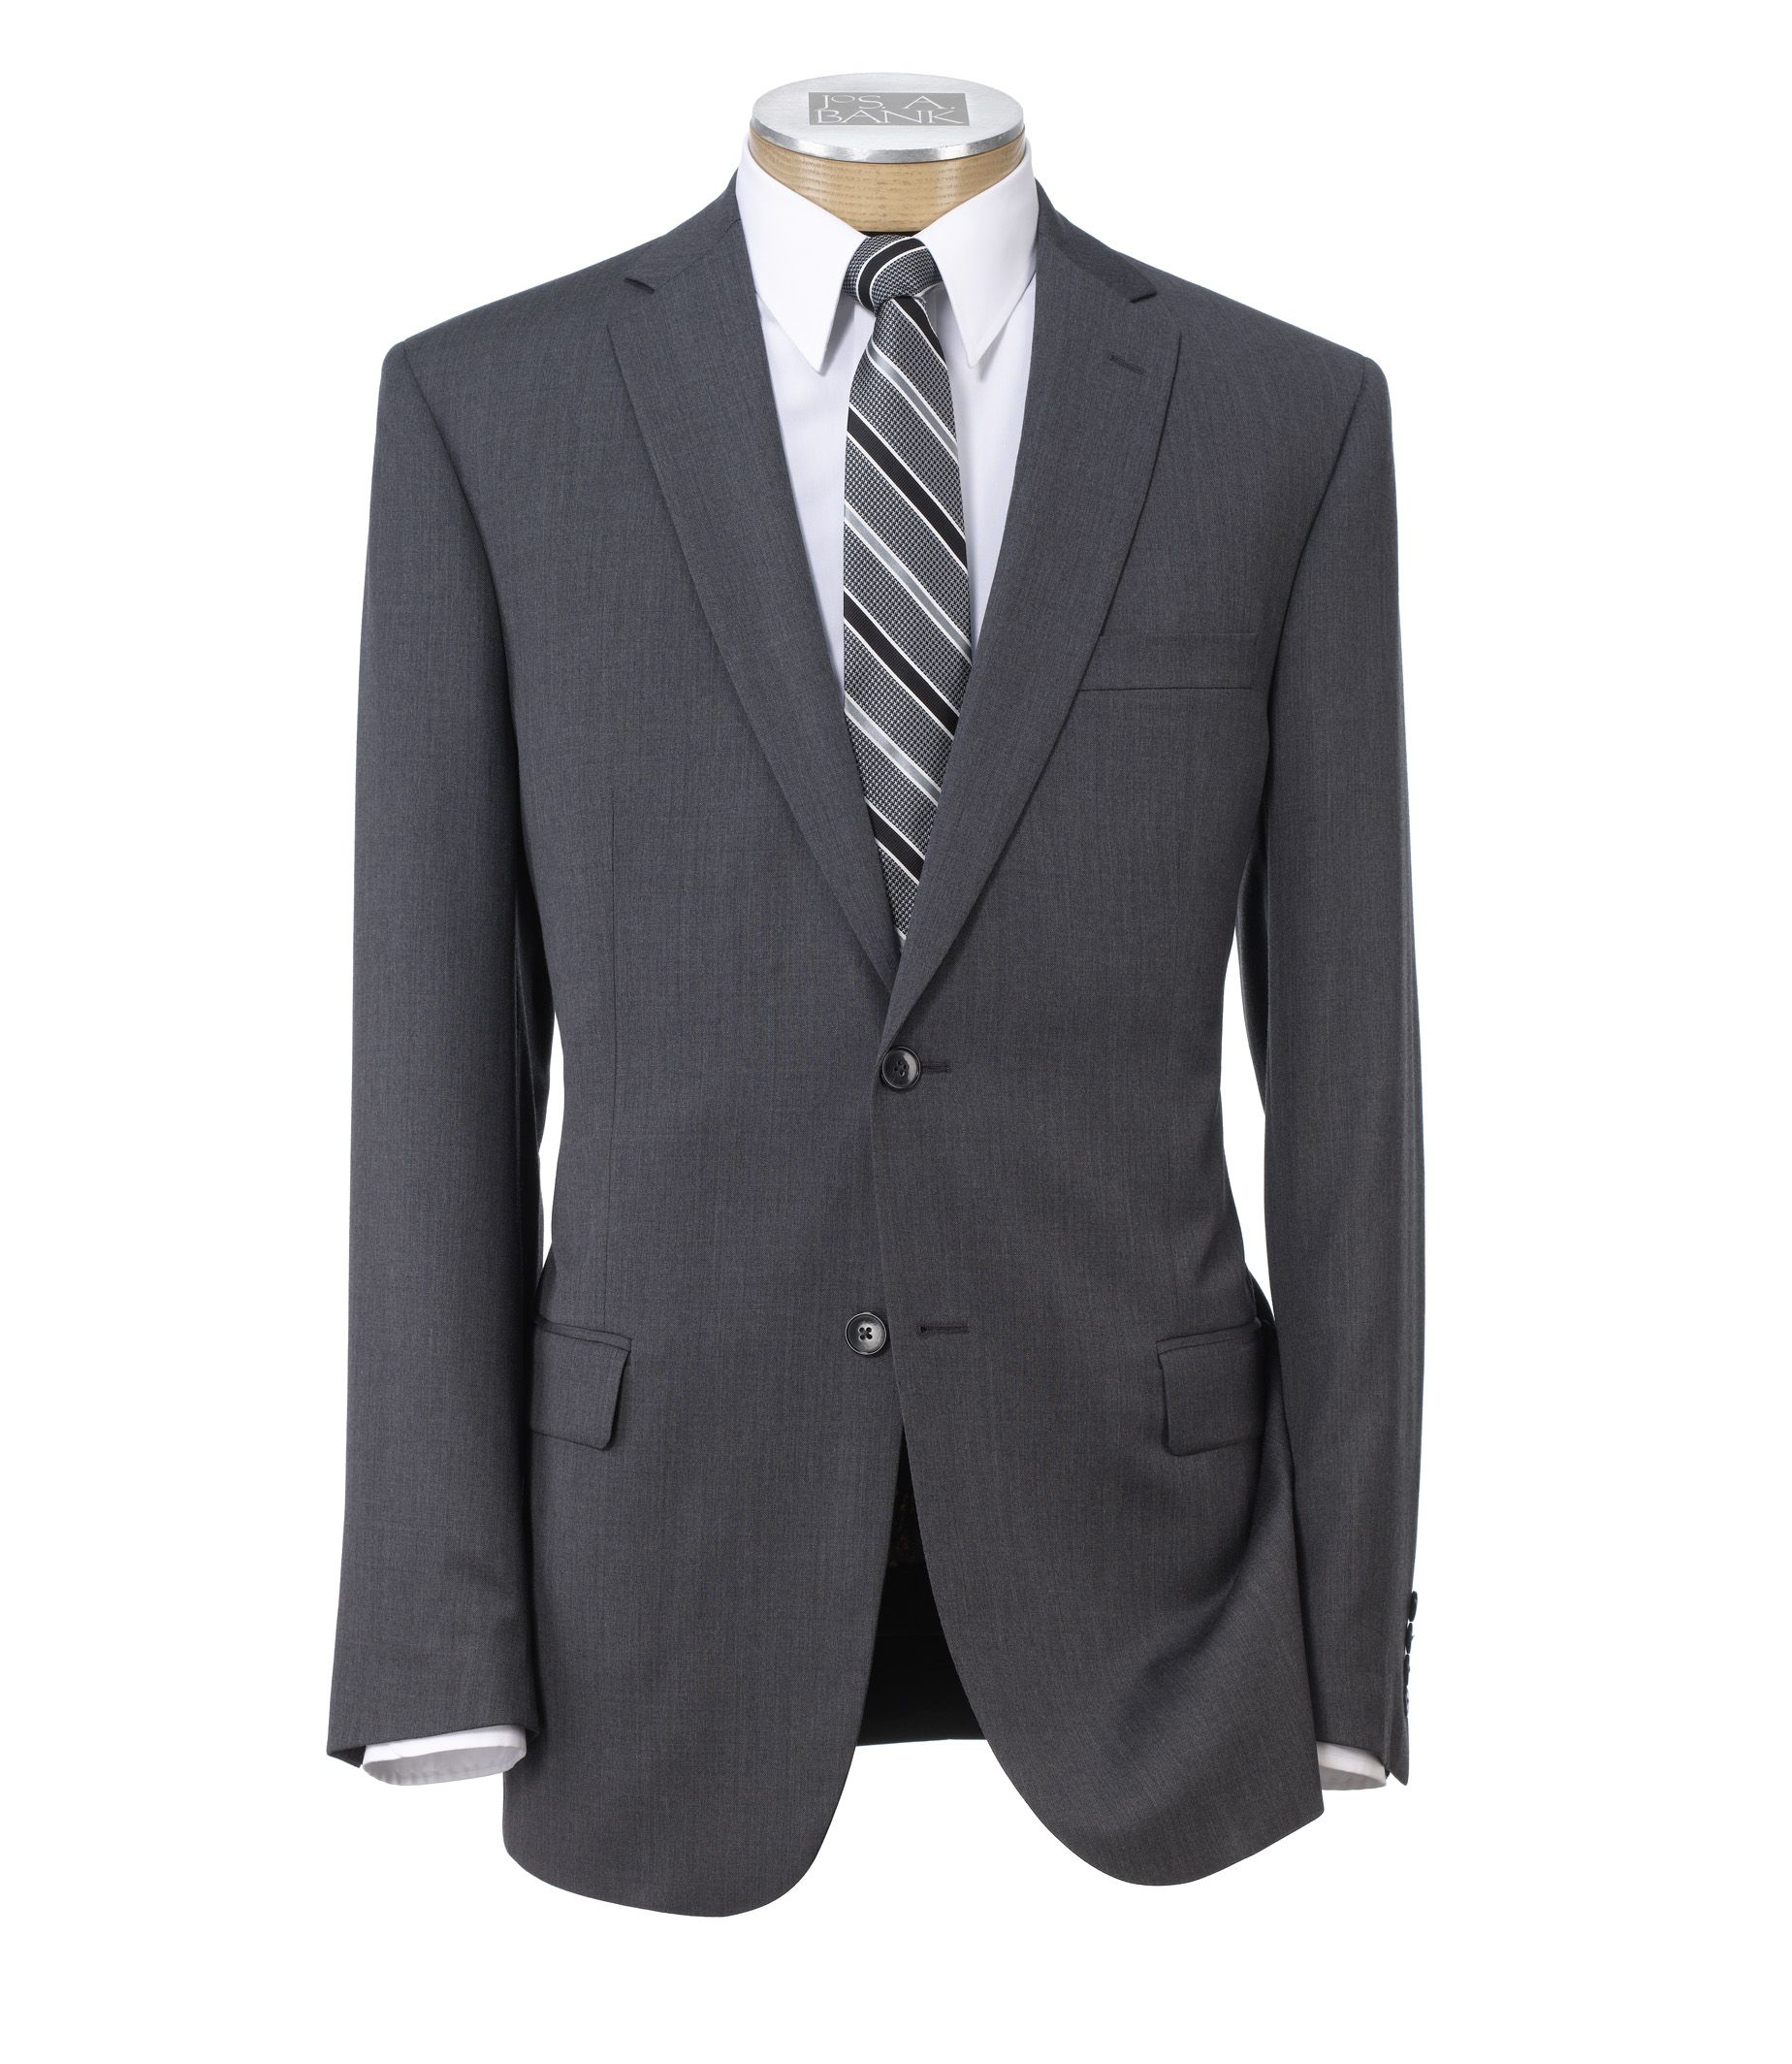 Traveler Slim Fit 2-Button Suit with Plain Front Trousers - Extended Sizes- Cambridge Grey